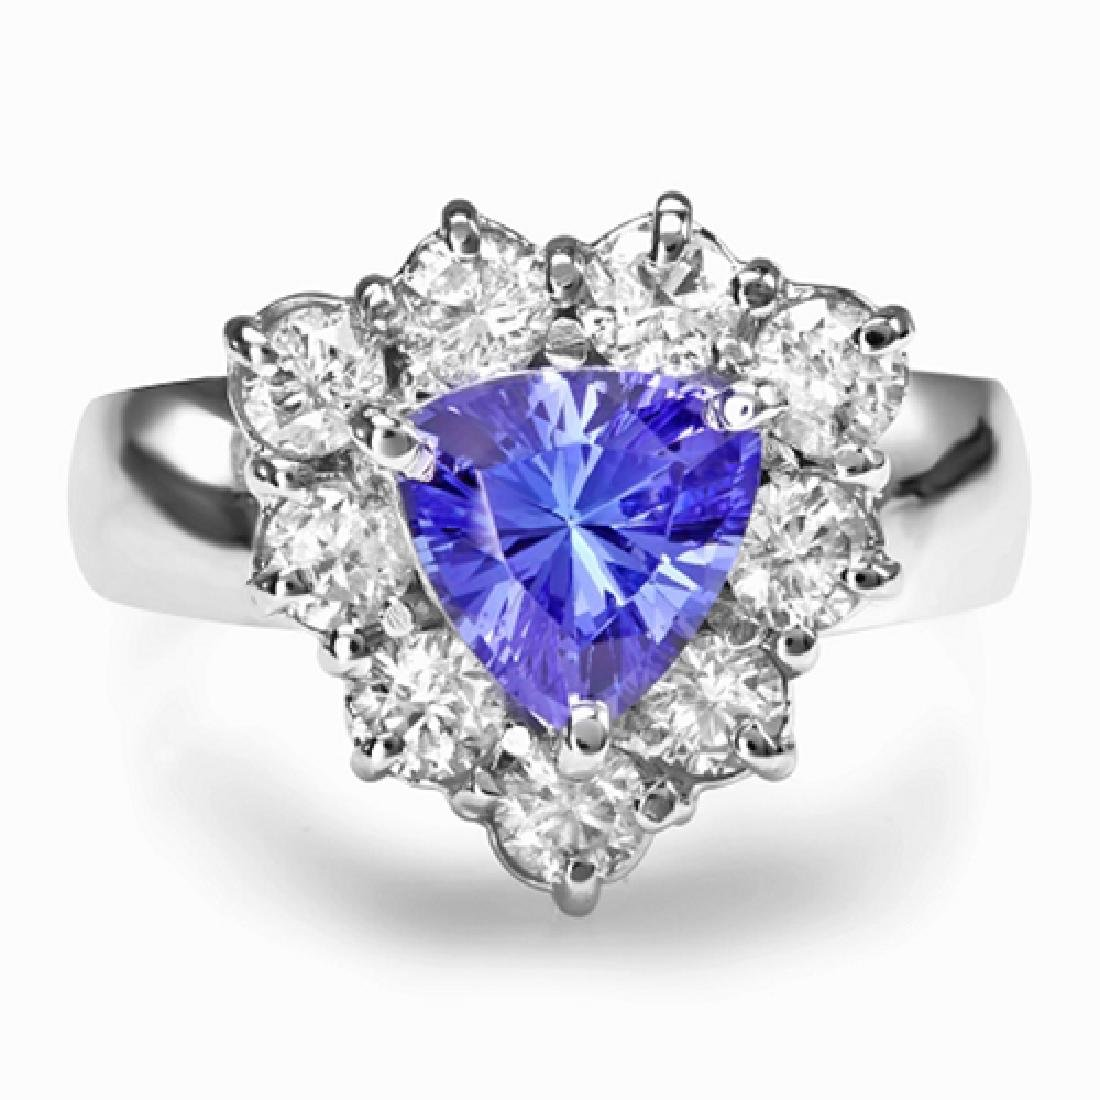 2.40 Carat Natural Tanzanite 18K Solid White Gold